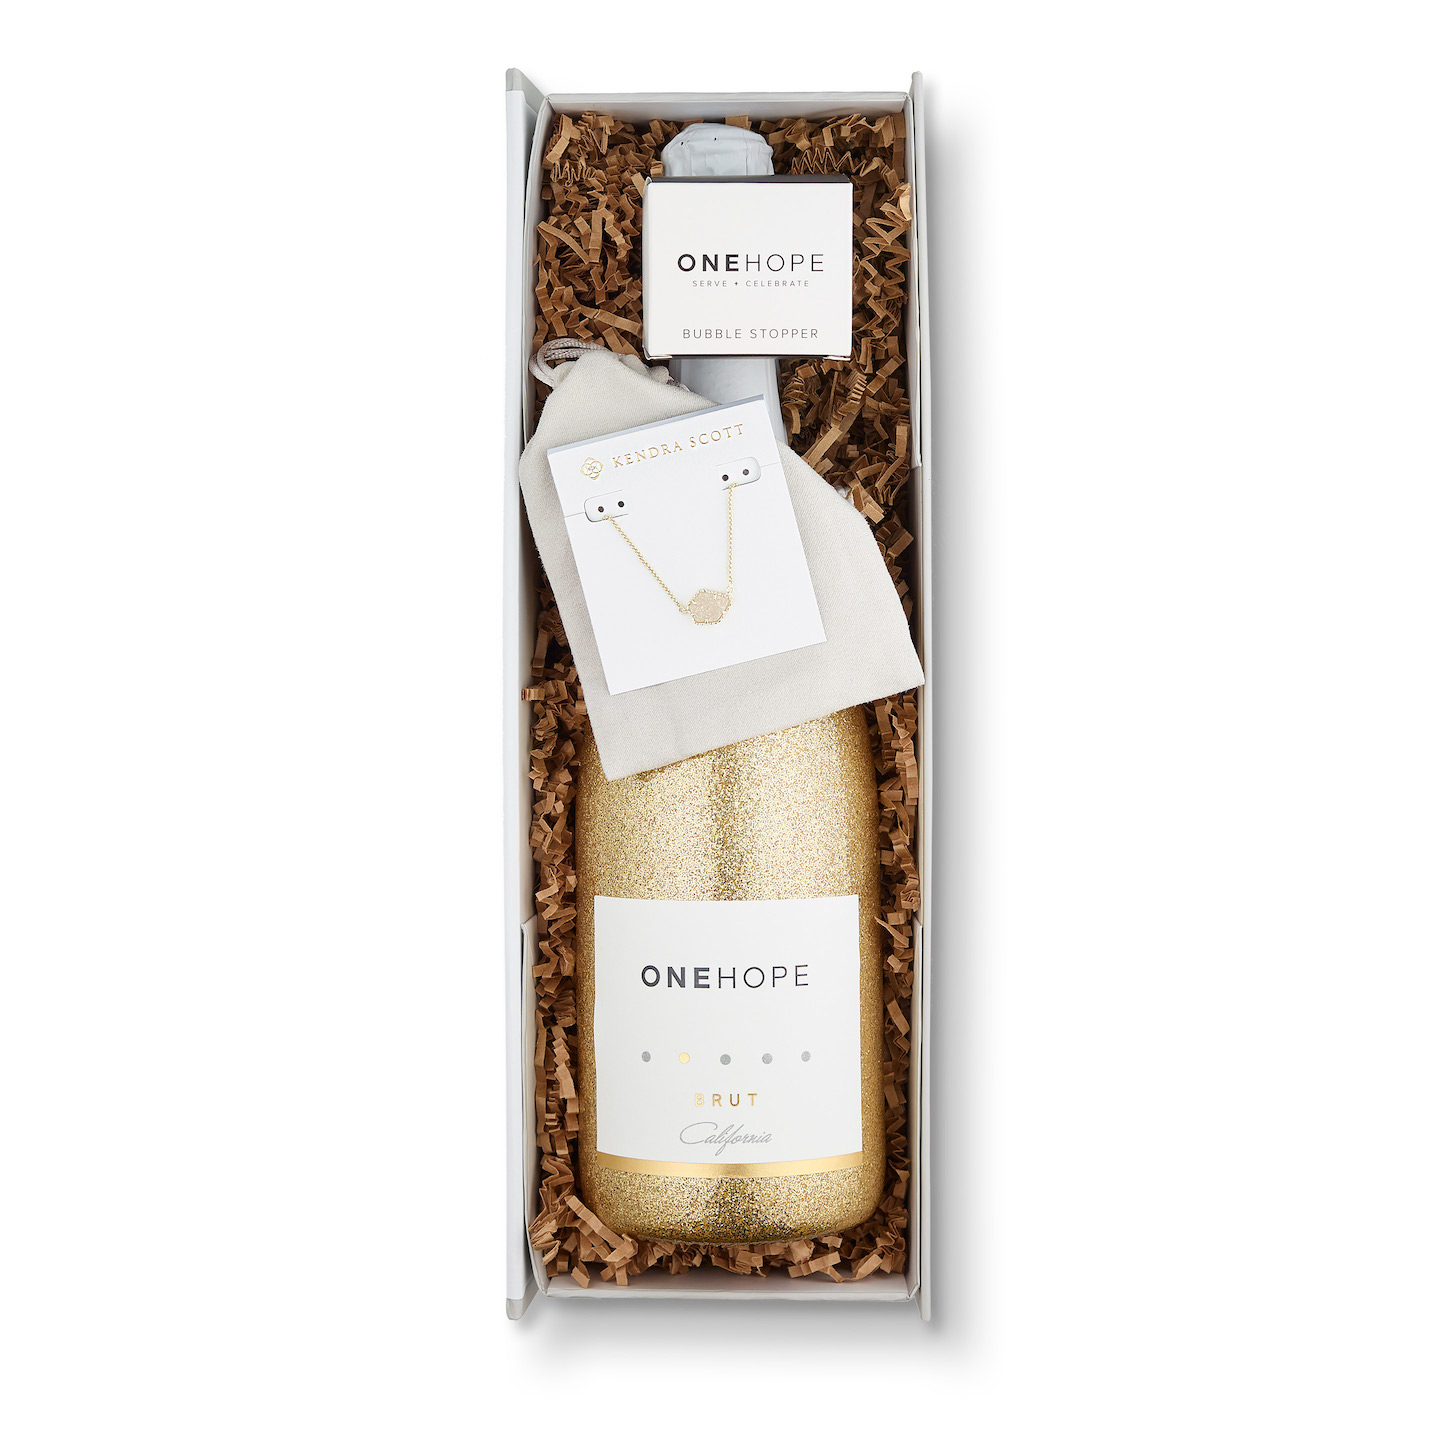 Romantic Valentine's Food gifts: Kendra Scott gift box of Champagne from One Hope gives you a bauble with those bubbles!